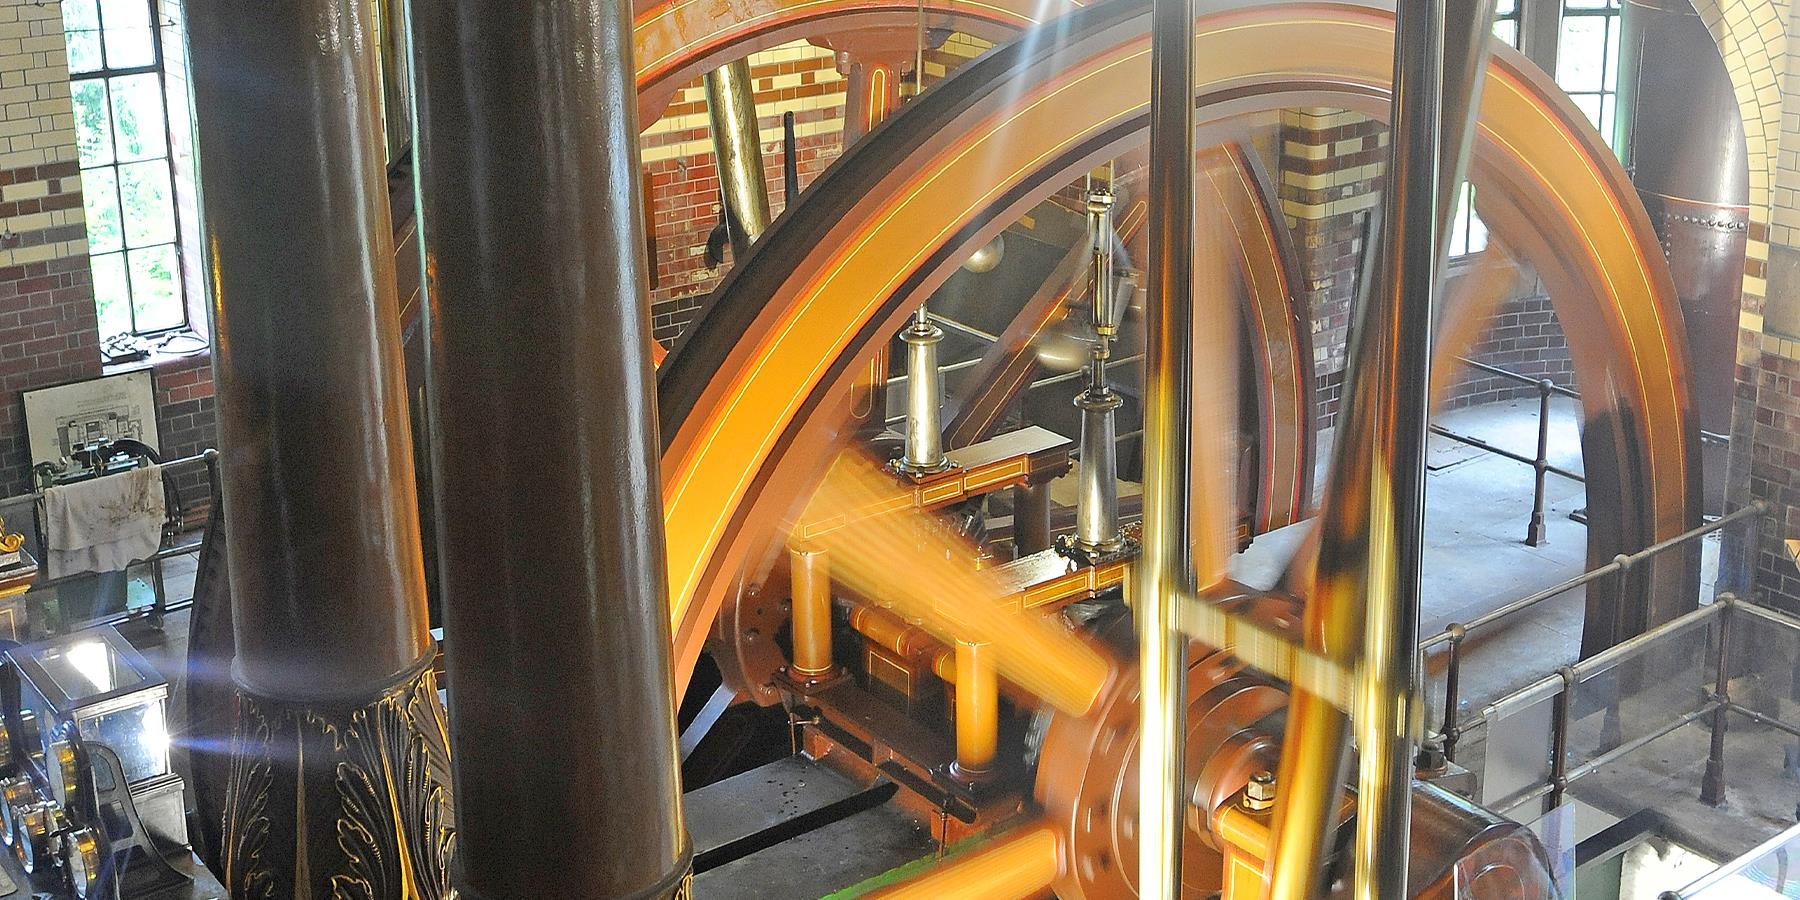 Abbey Pumping Station beam engine